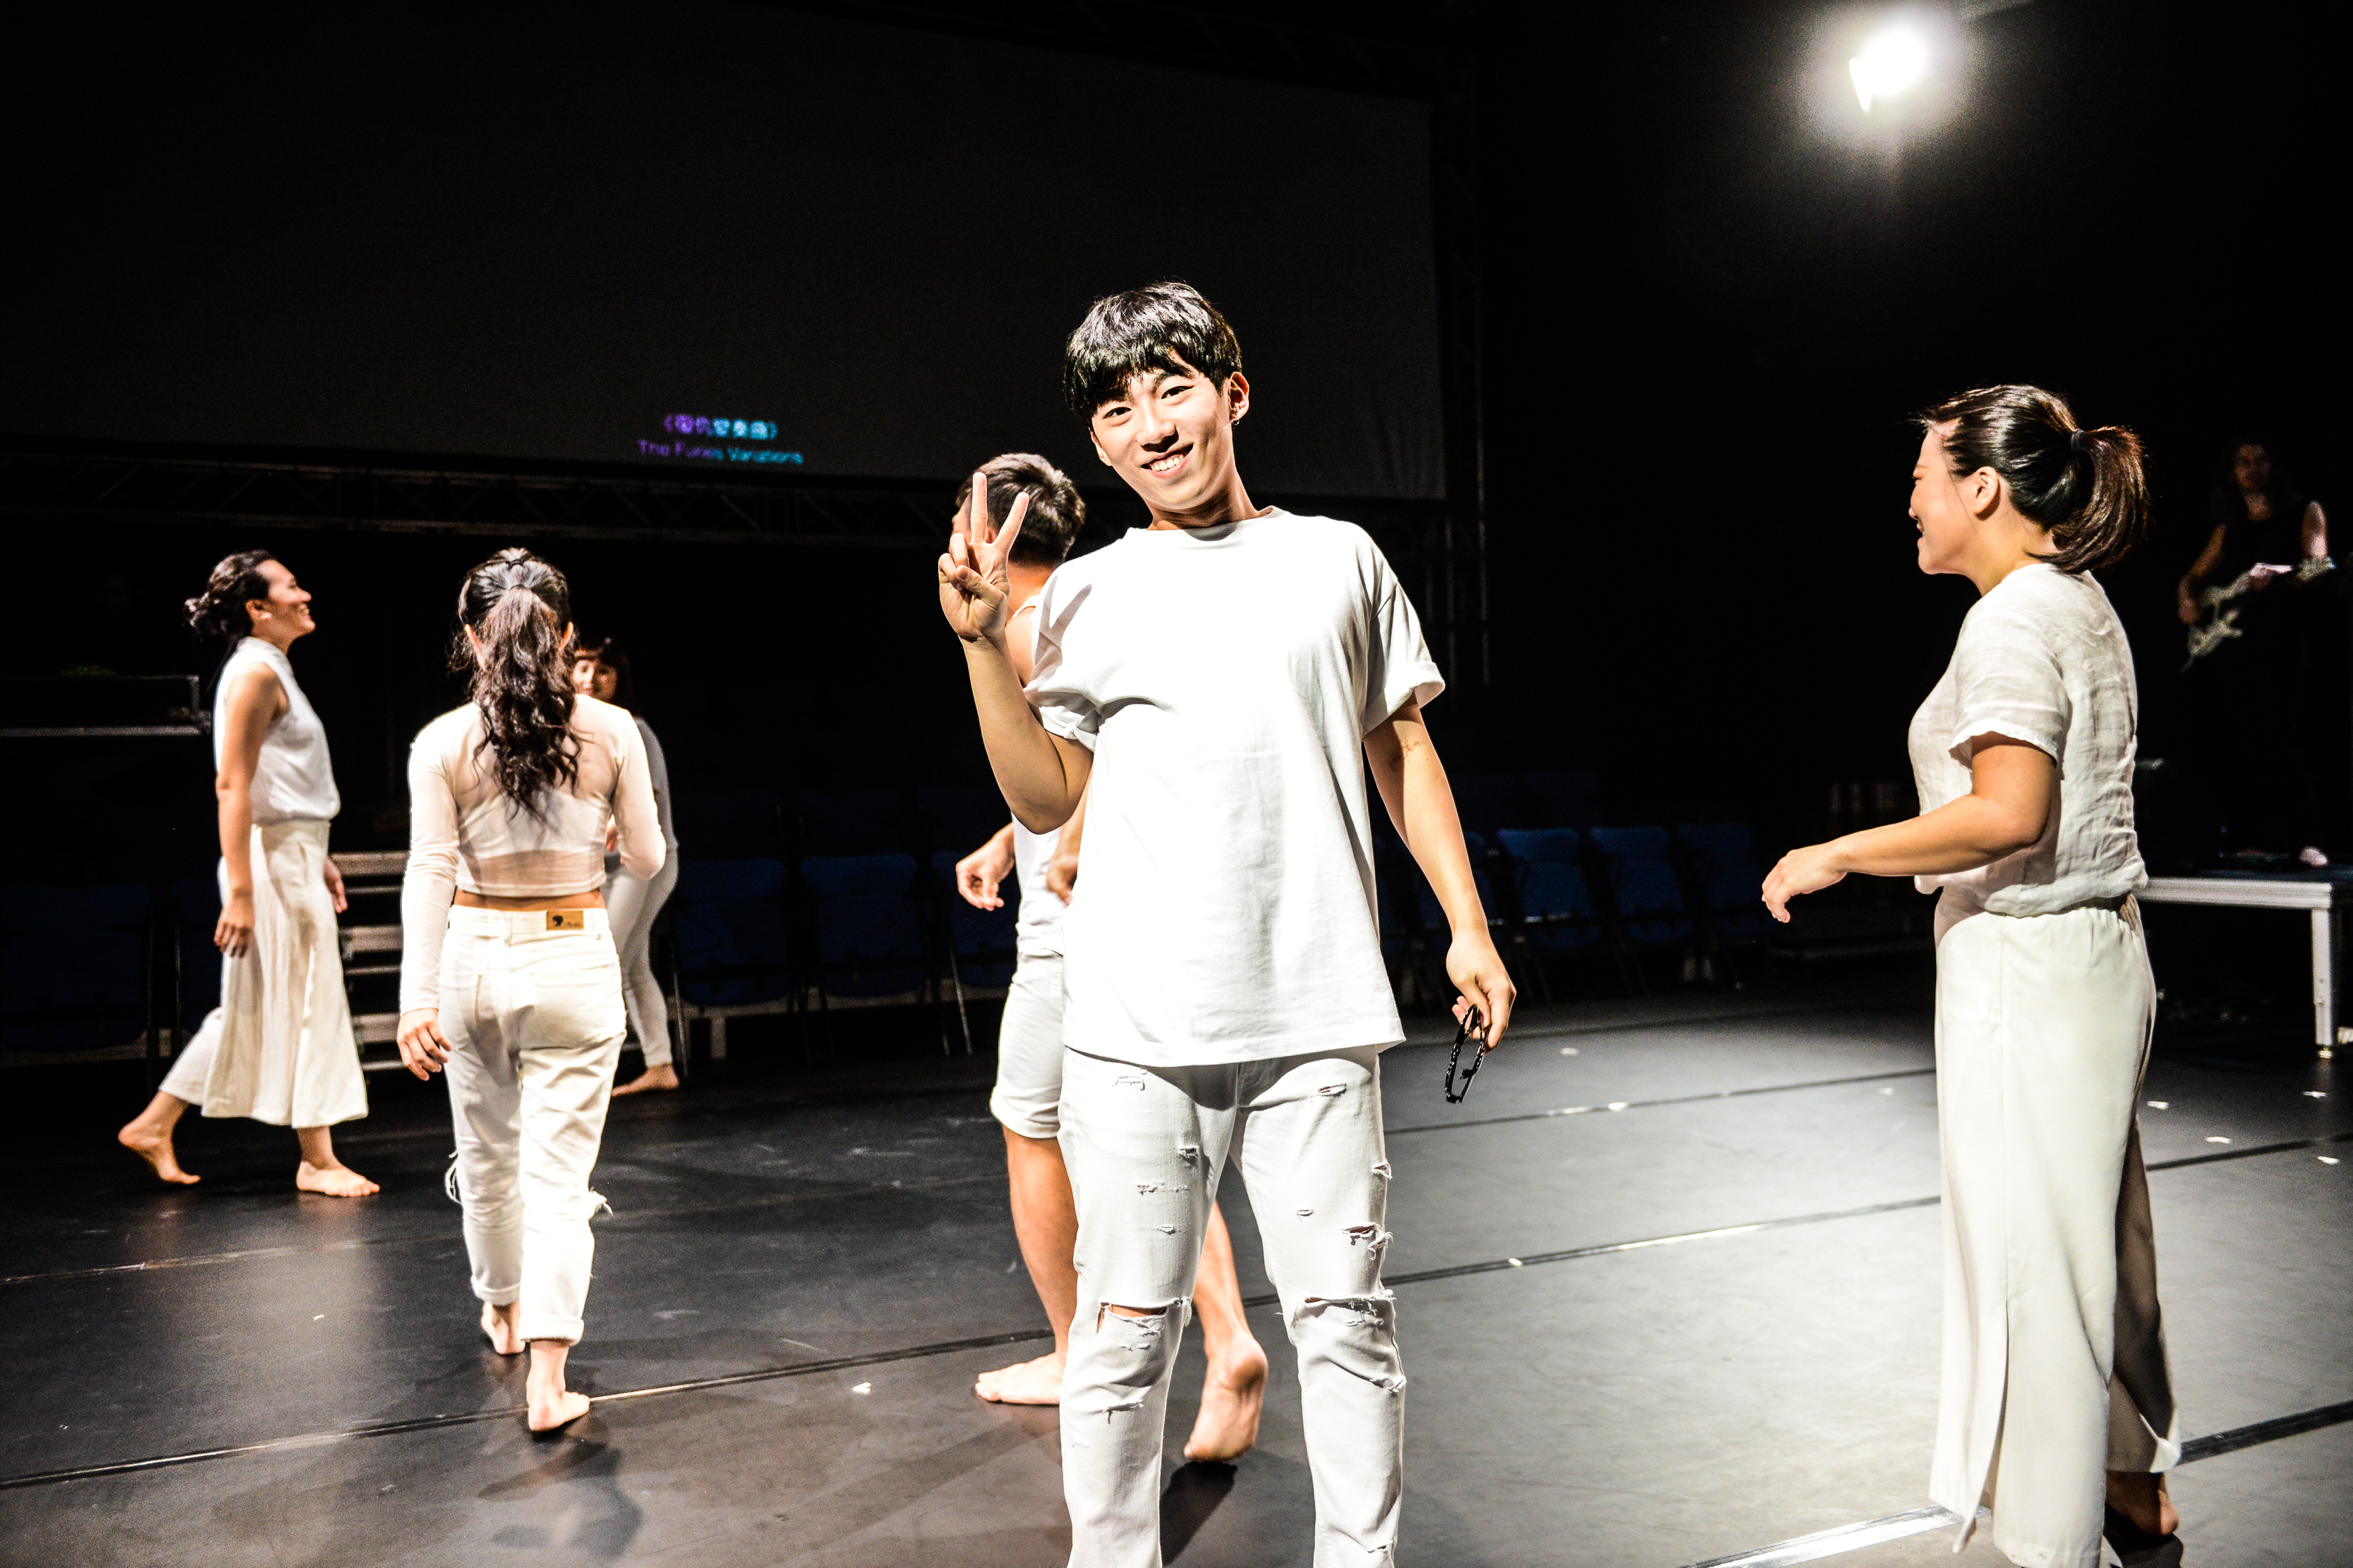 The Furies Variations, Rooftop Productions Theatre Hong Kong 2018 | Featuring: Chou Henick | Tagged as: Show, The Furies Variations | Photo: Fung Wai Sun |  (Rooftop Productions • Hong Kong Theatre Company)